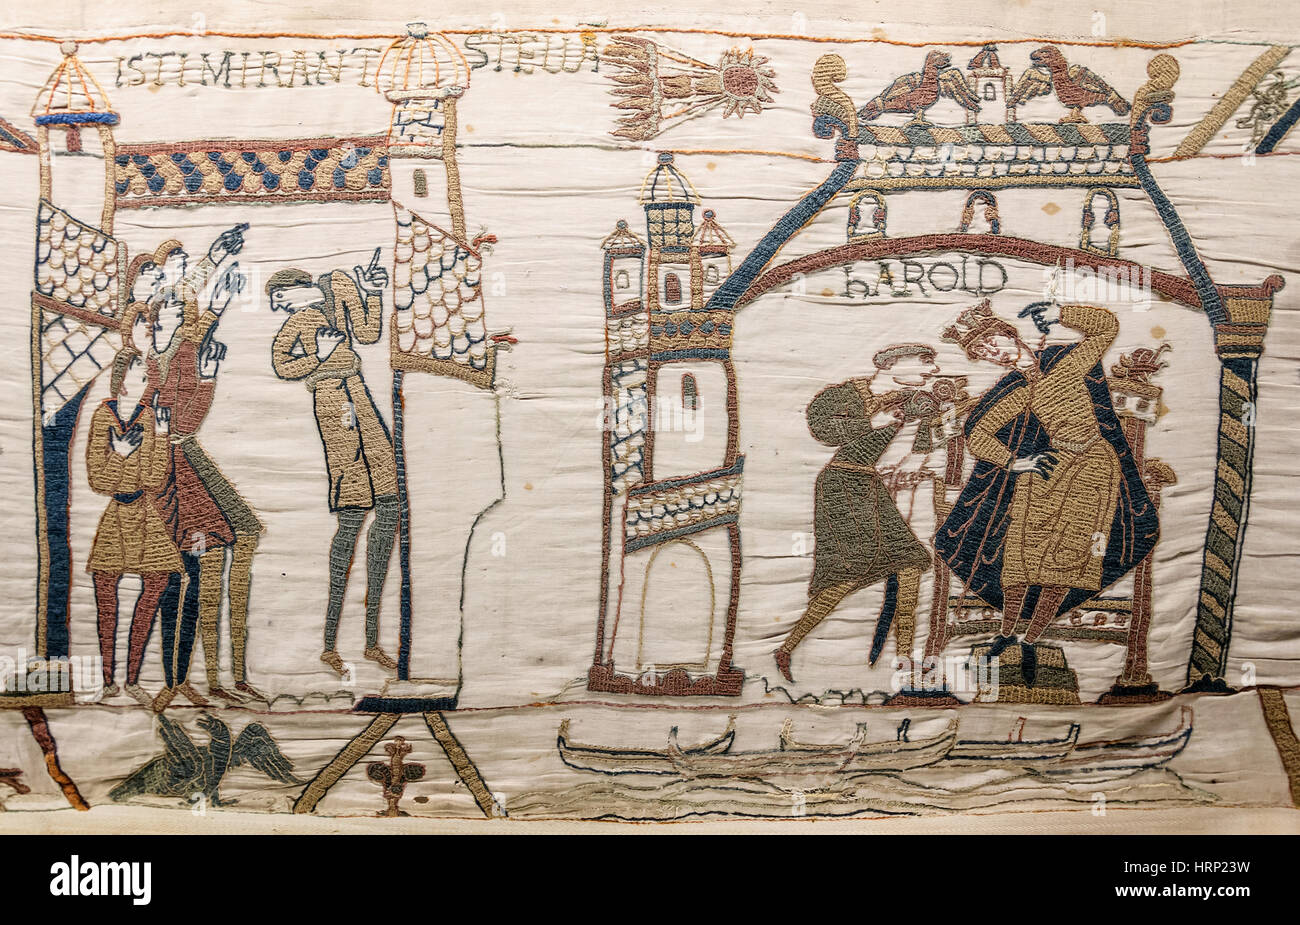 Halley's Comet of 1066, Bayeux Tapestry - Stock Image